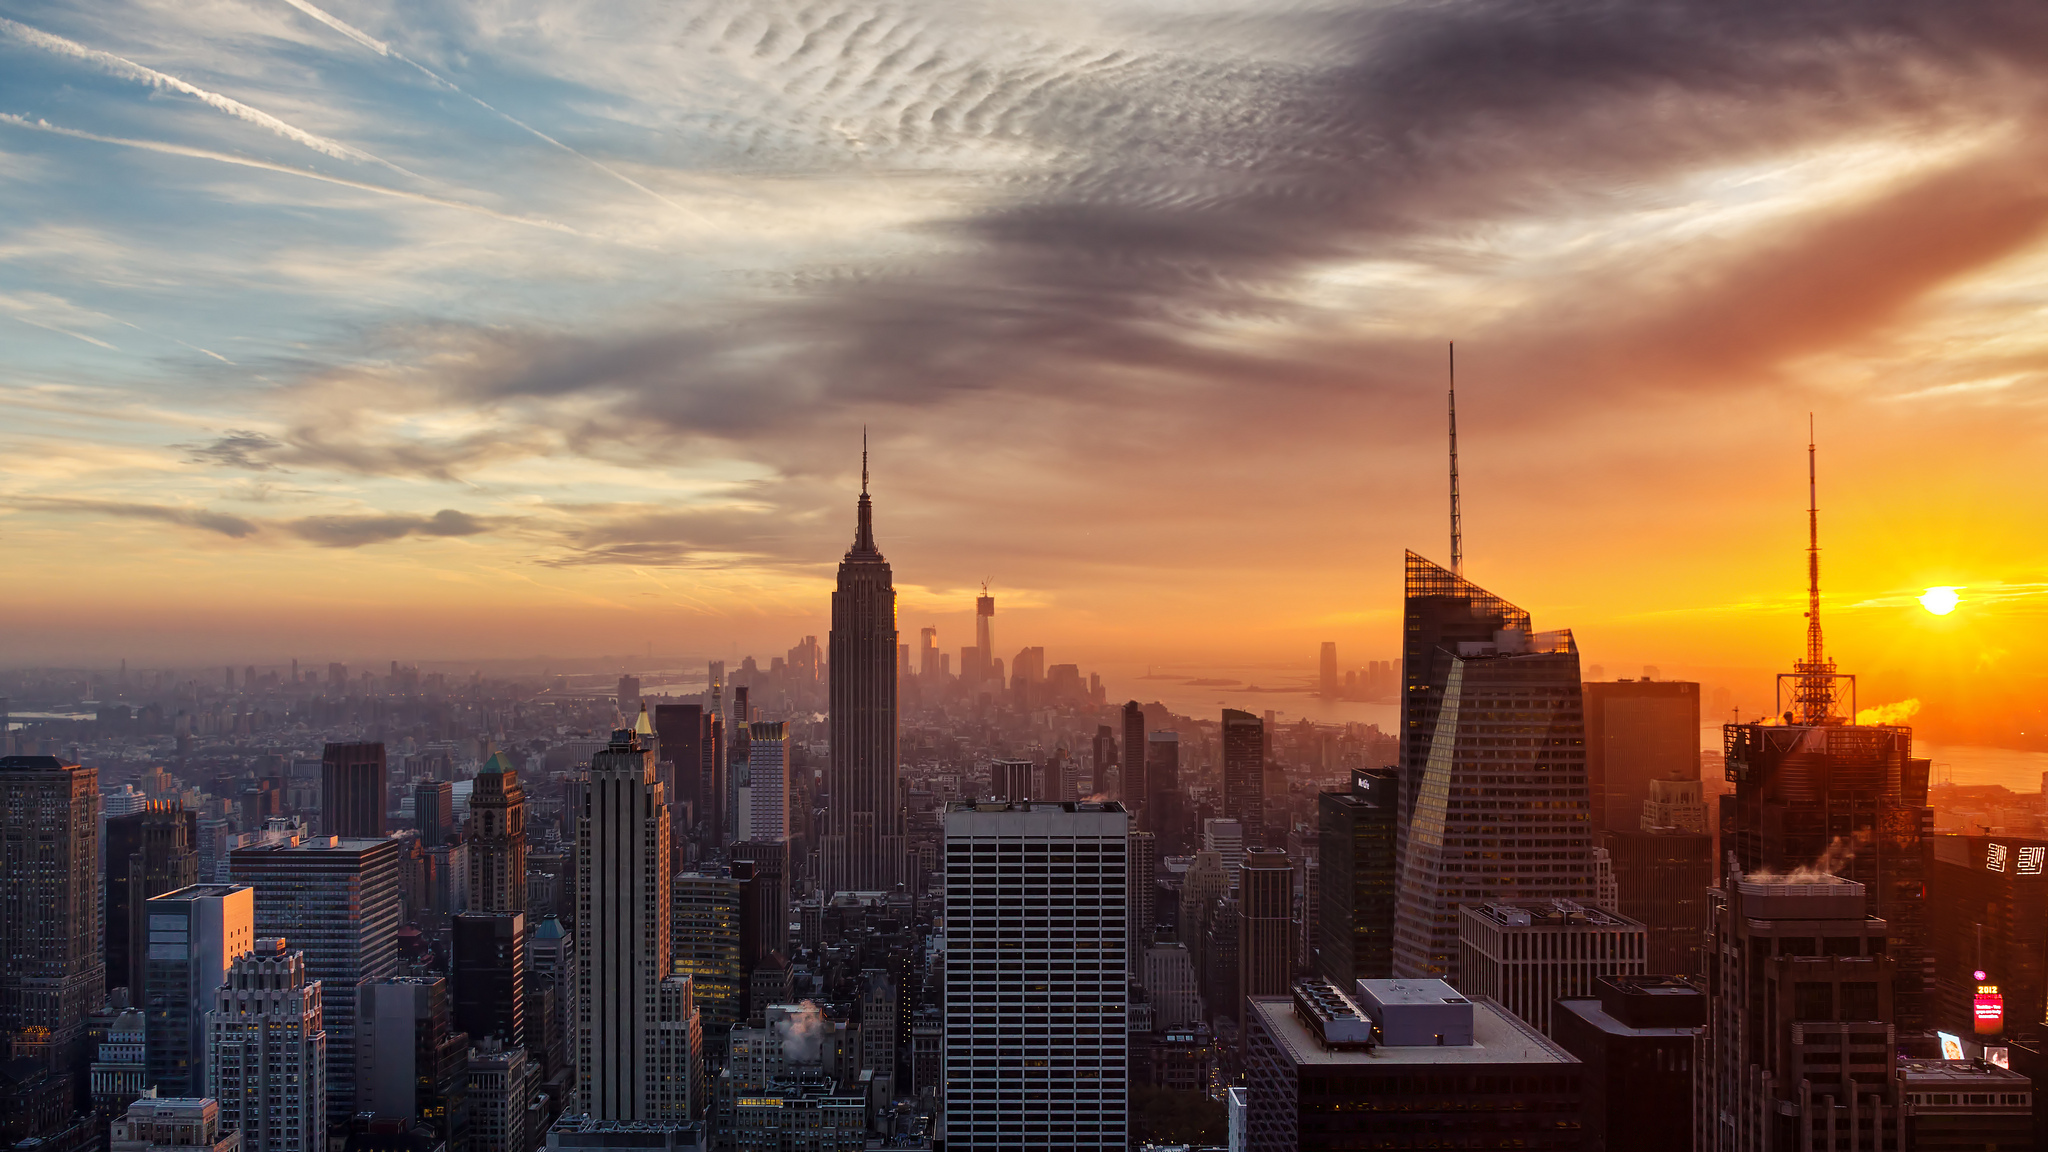 New York Hd Wallpaper Background Image 2048x1152 Id 361558 Wallpaper Abyss